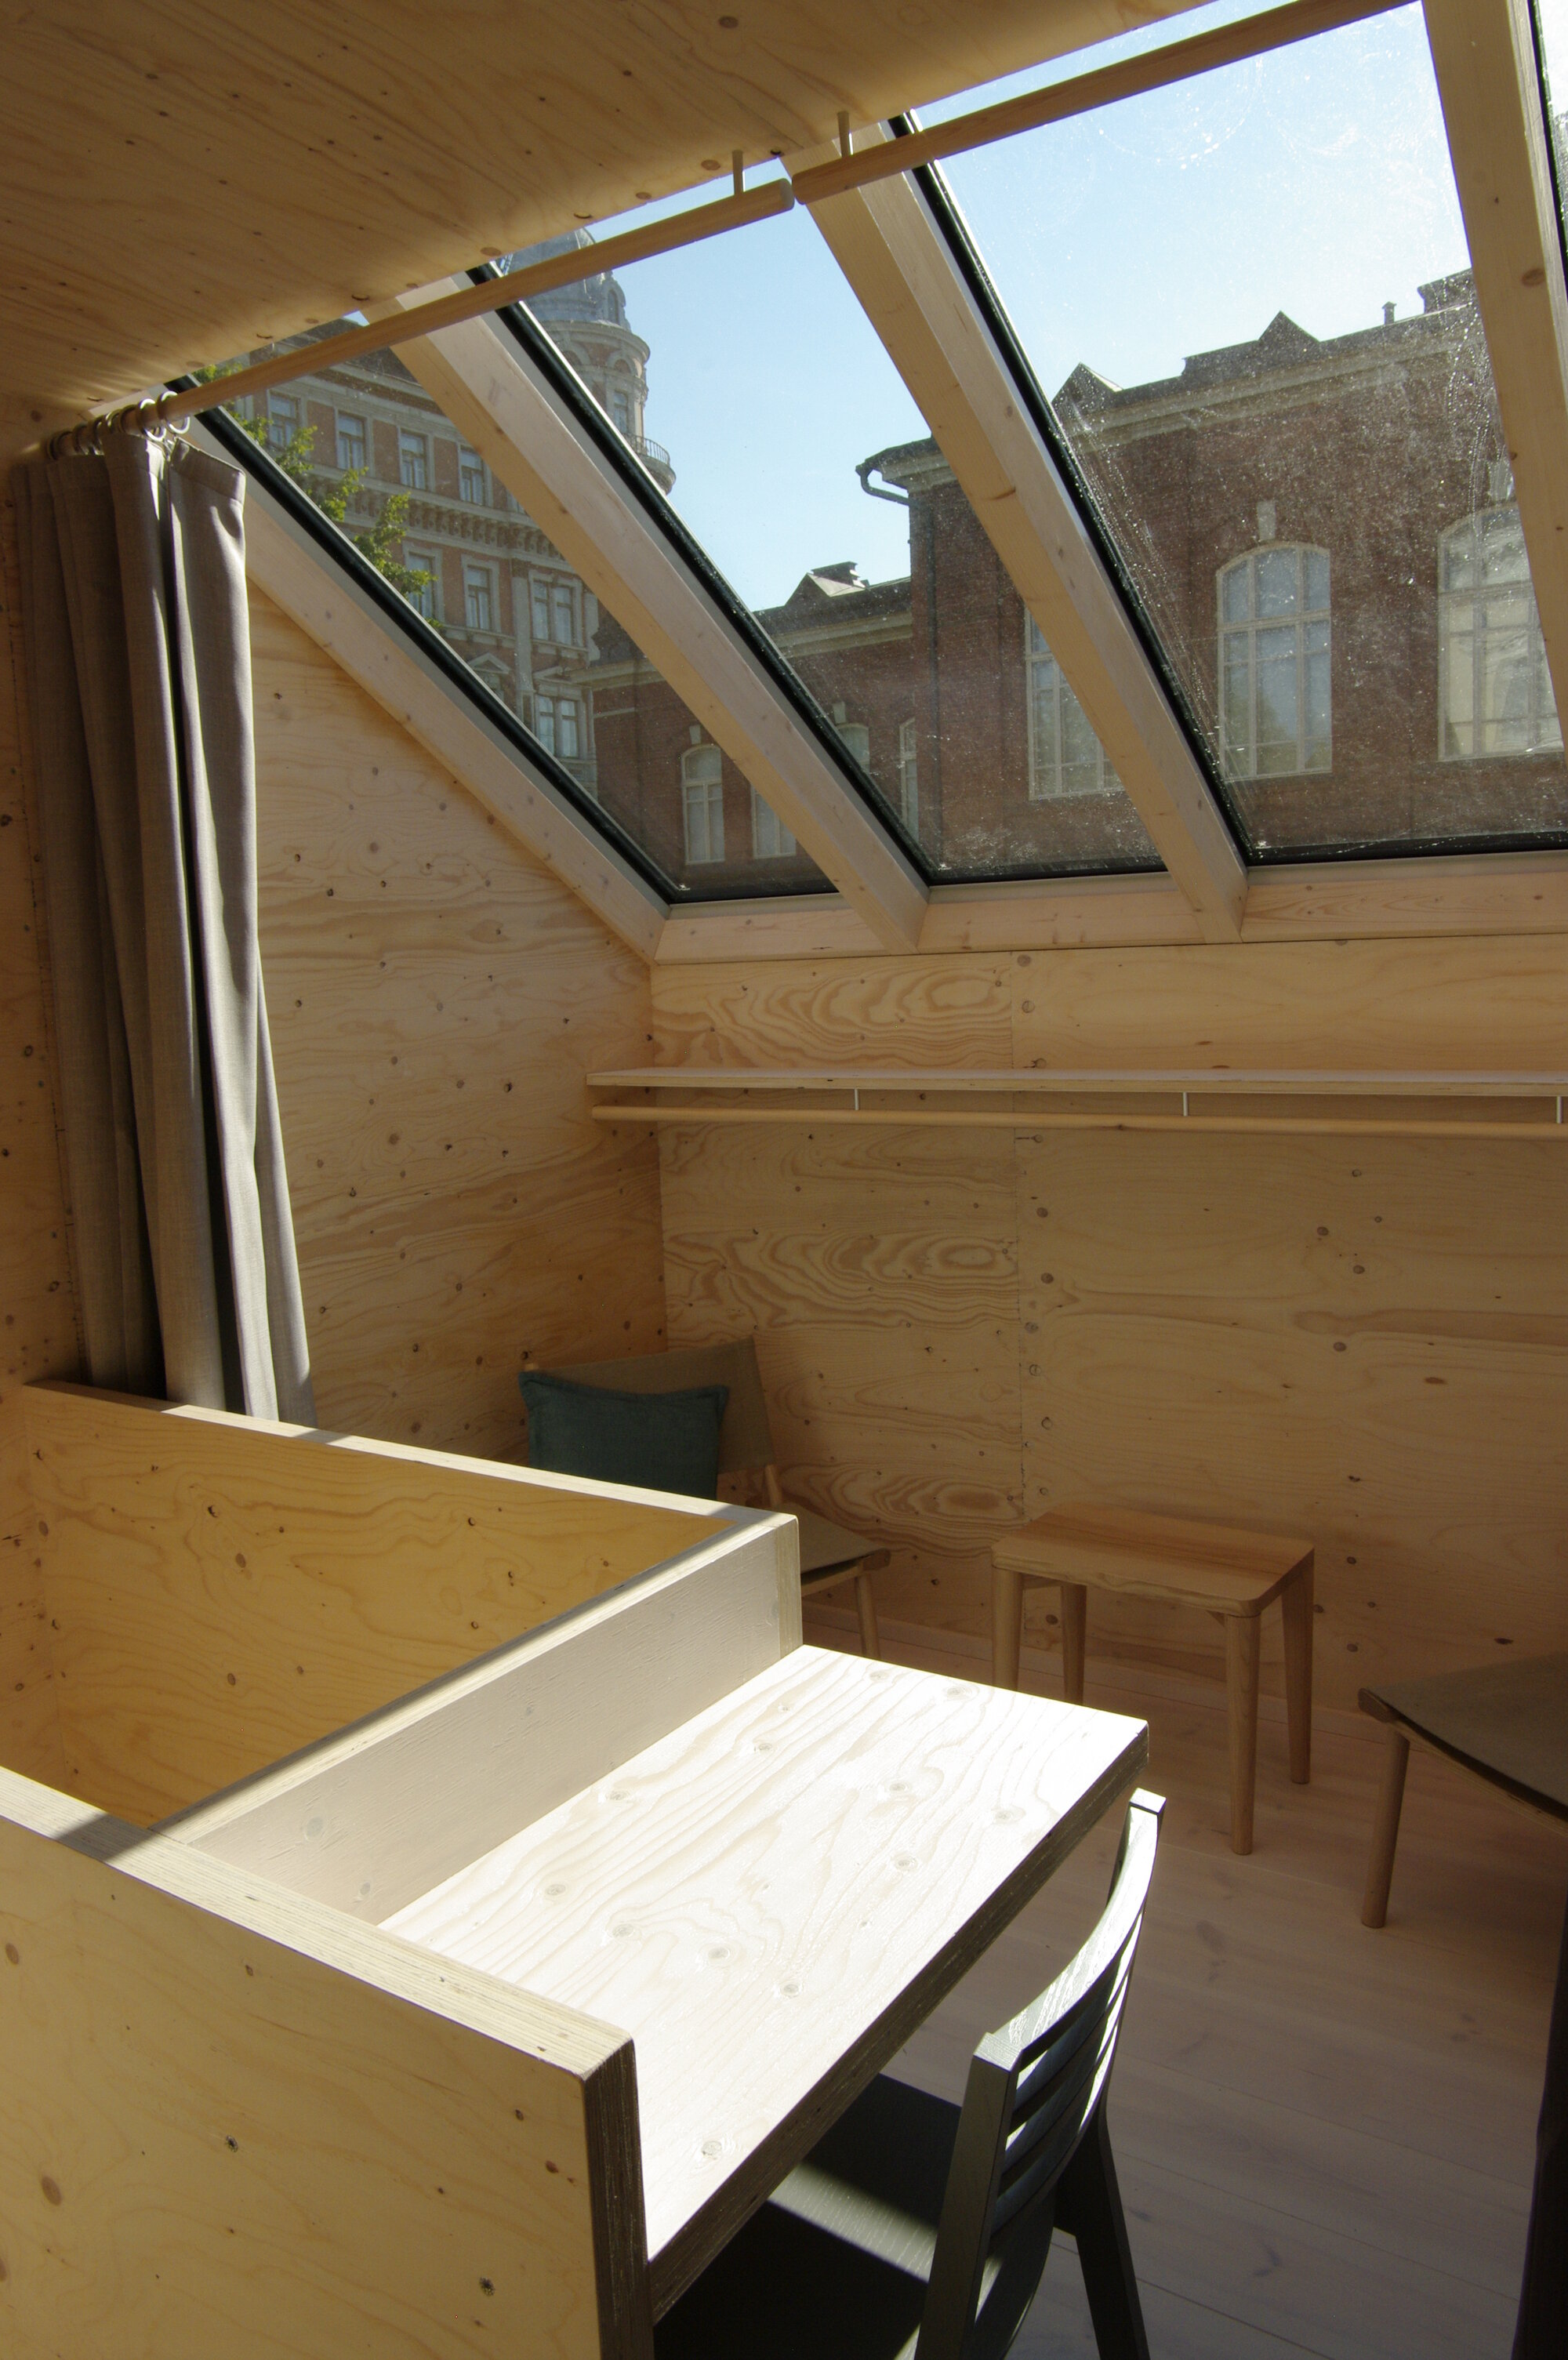 Kokoon - Aalto University Wood Program - Finland - Study Desk - Humble Homes